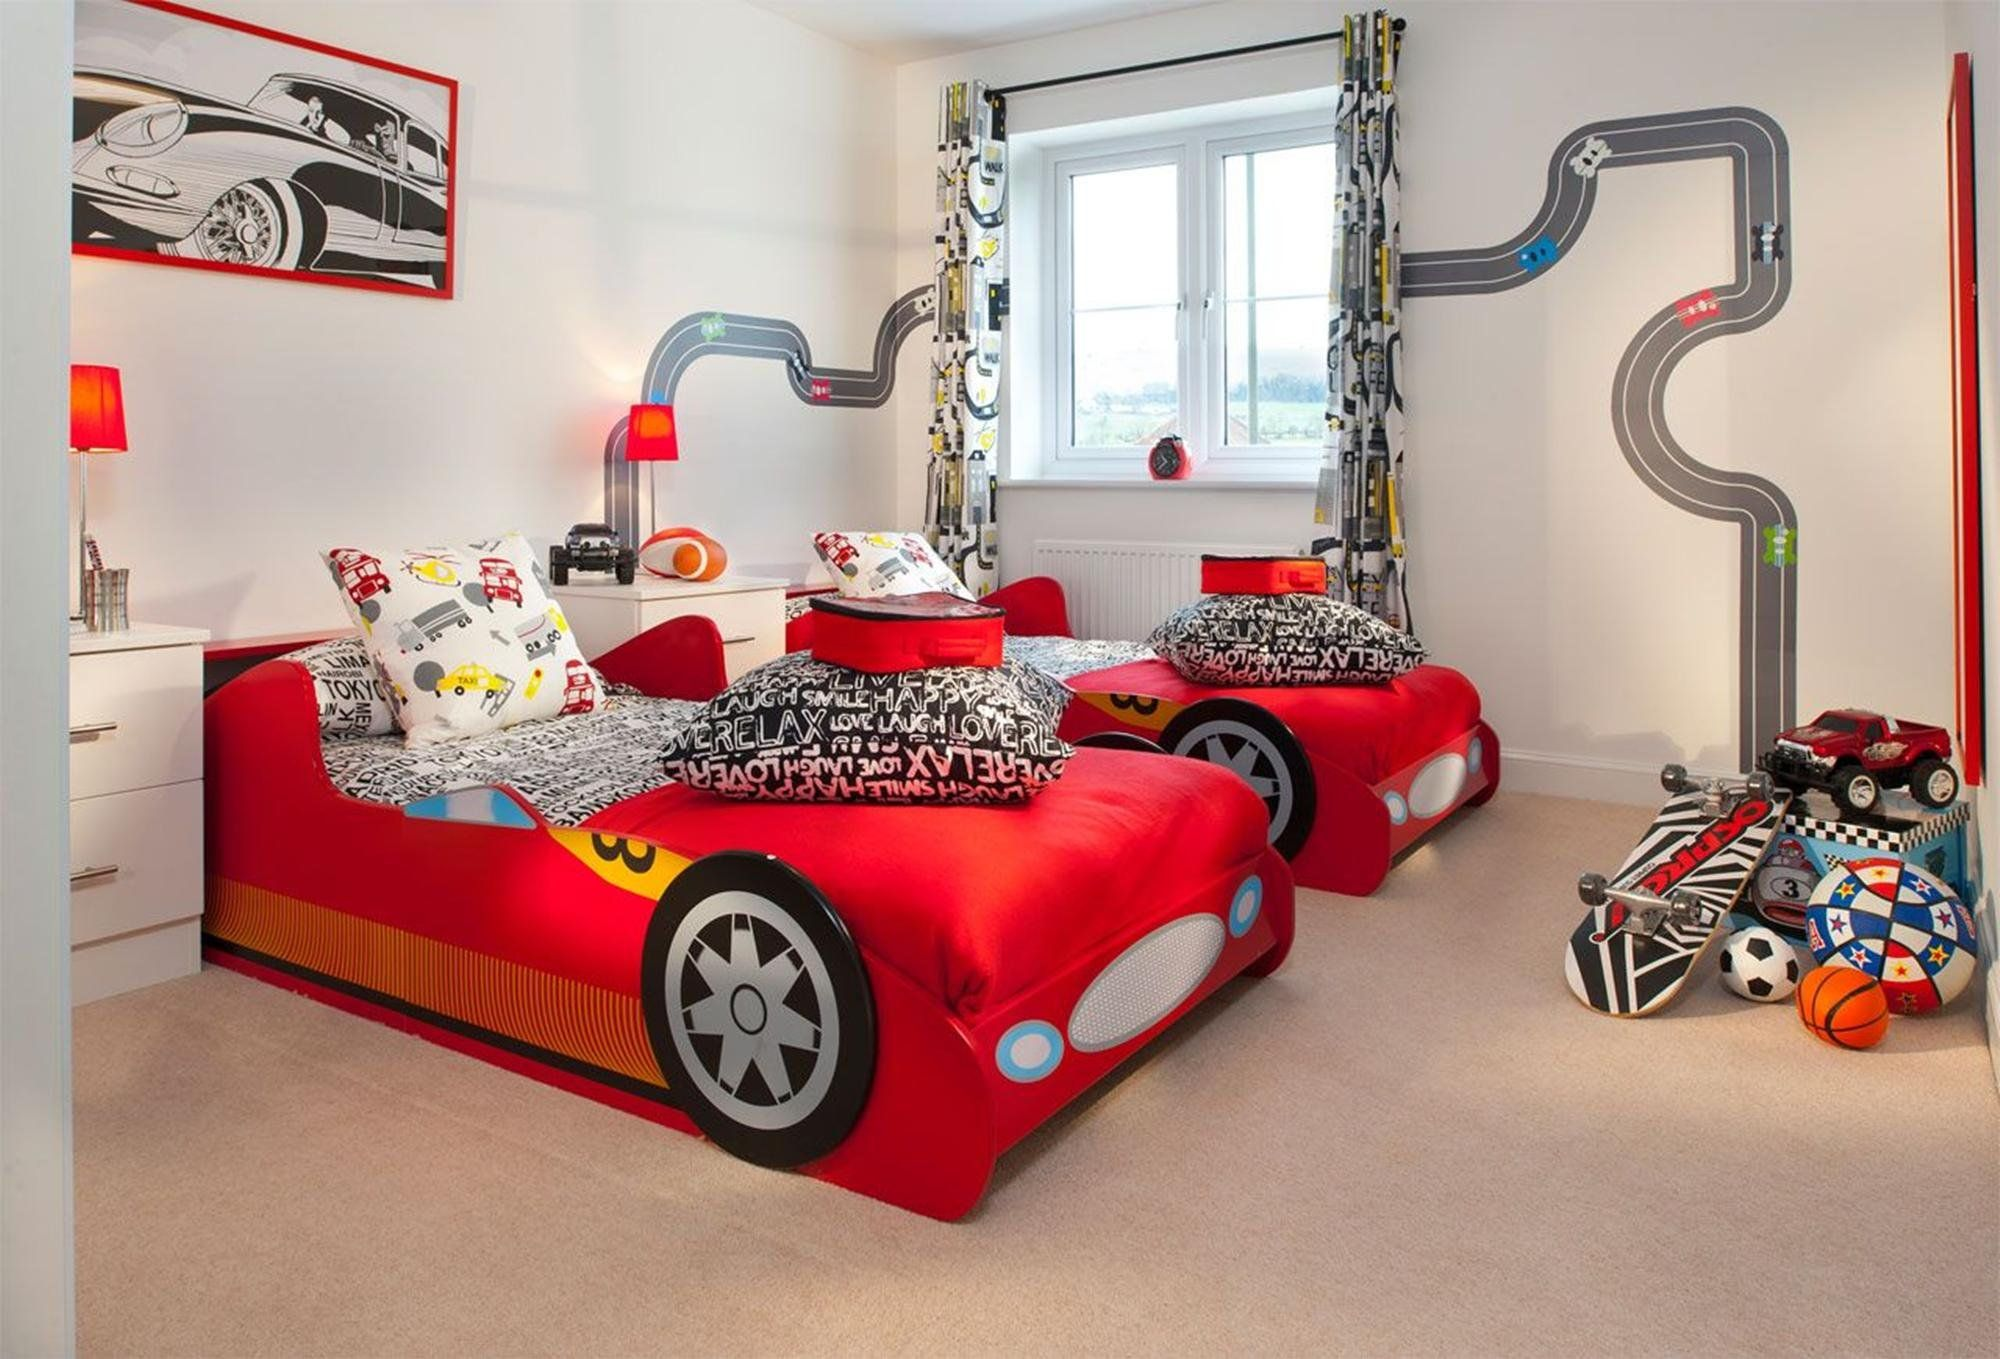 Unique Twin Bed for Boys inside Stunning Bedroom with White